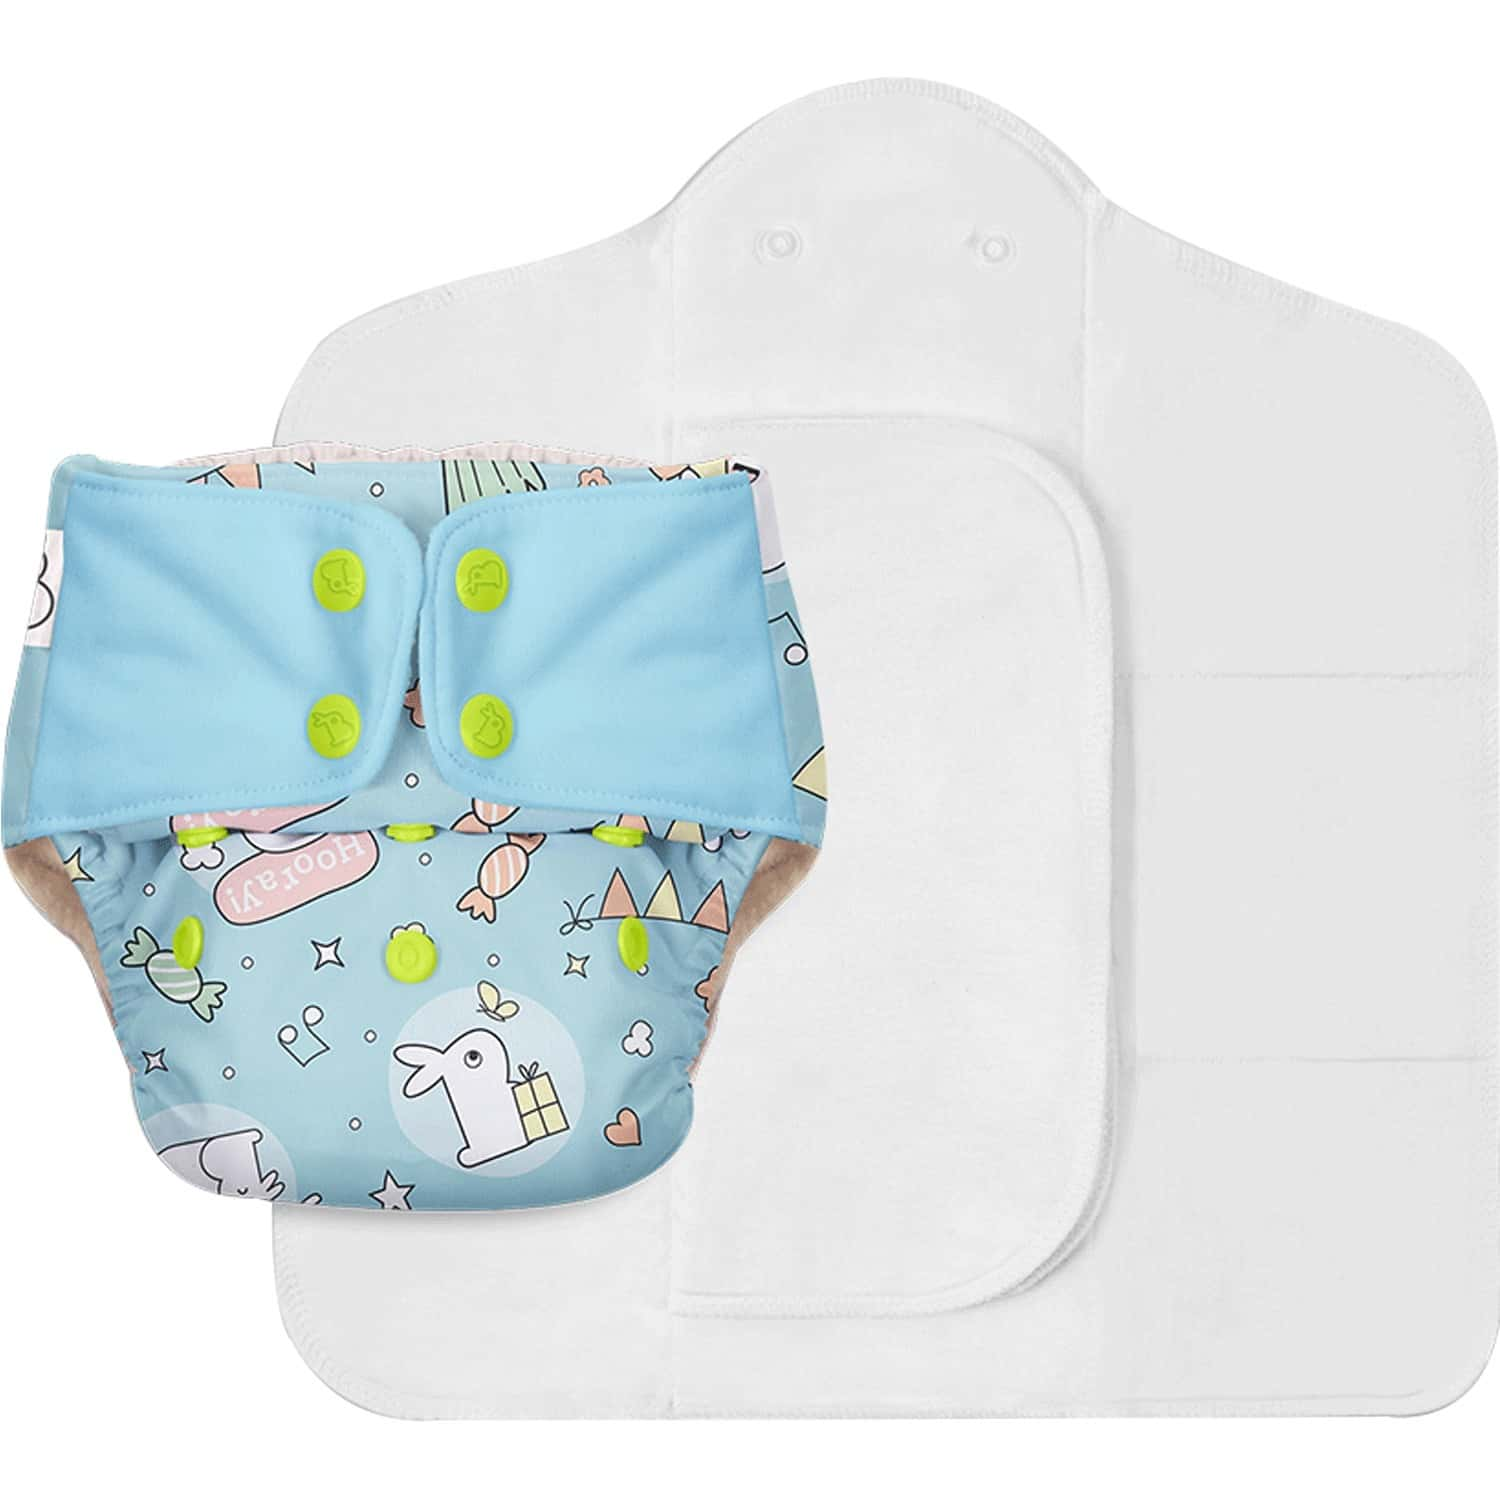 Superbottoms Freesize Uno - Reusable Cloth Diaper With Dry Feel Pads Set - Hunny Bummy